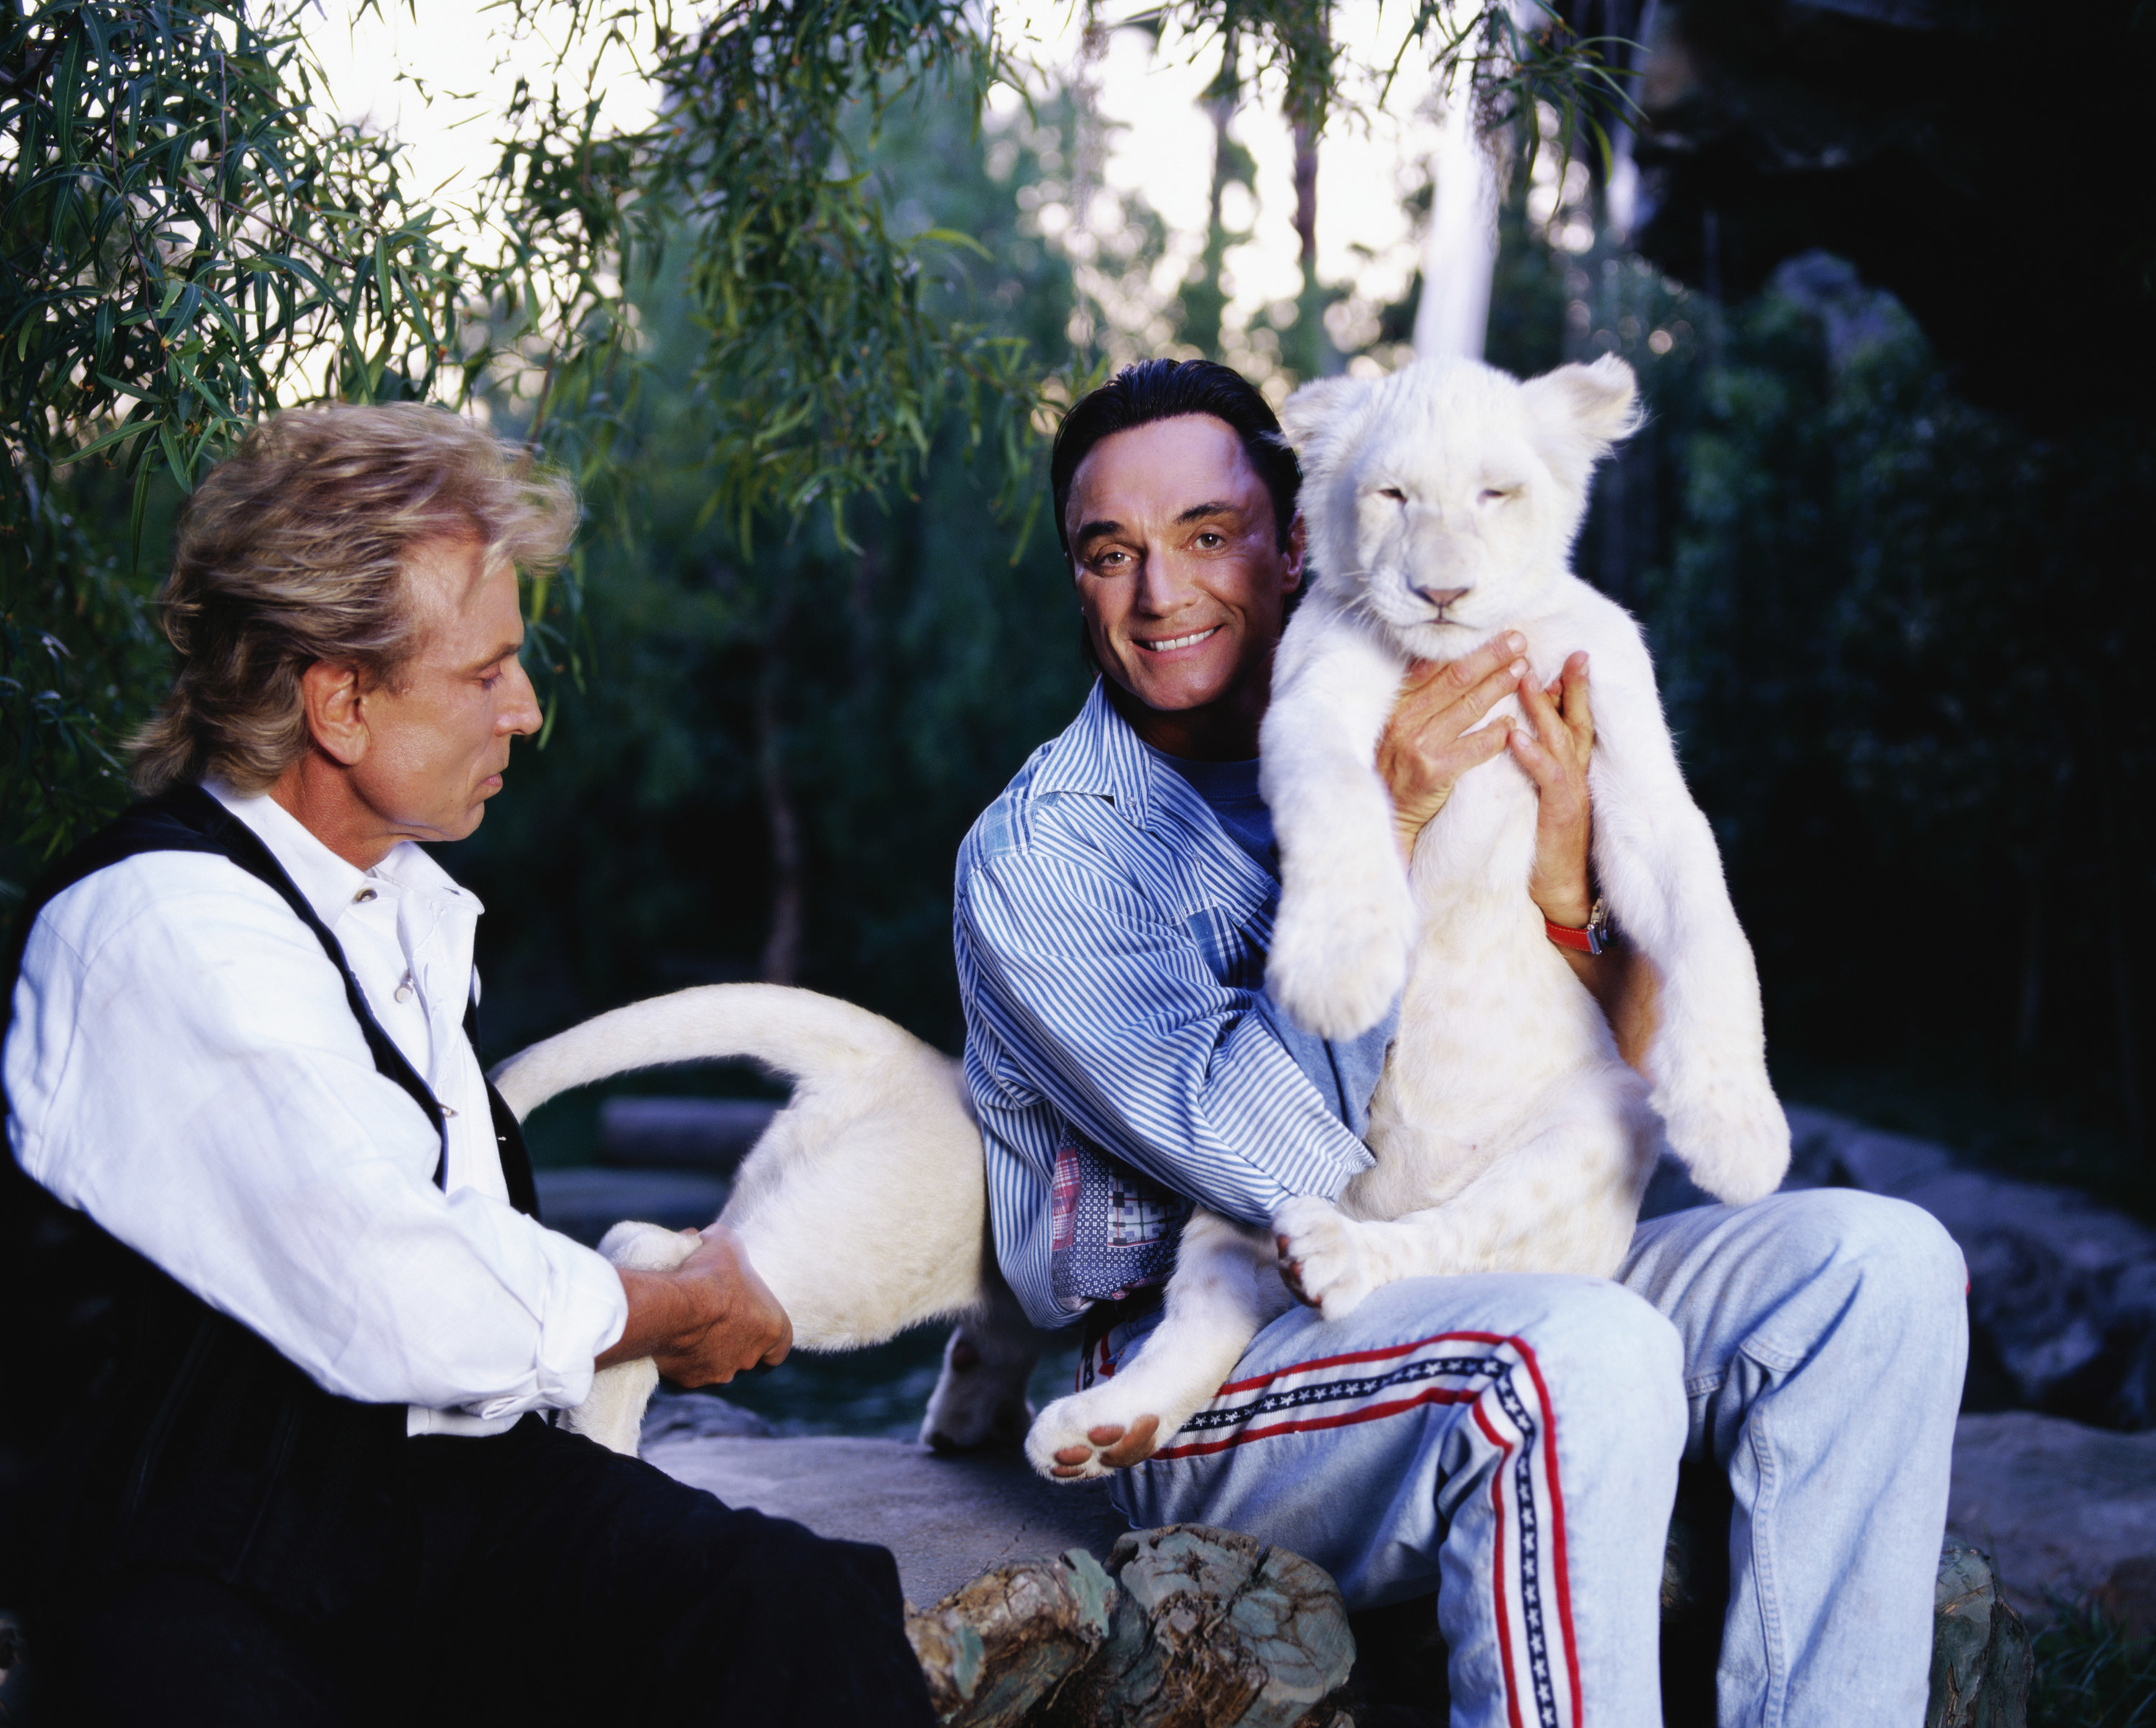 Two men seated outside, one man has a small white tiger on his lap that he is holding up for the camera